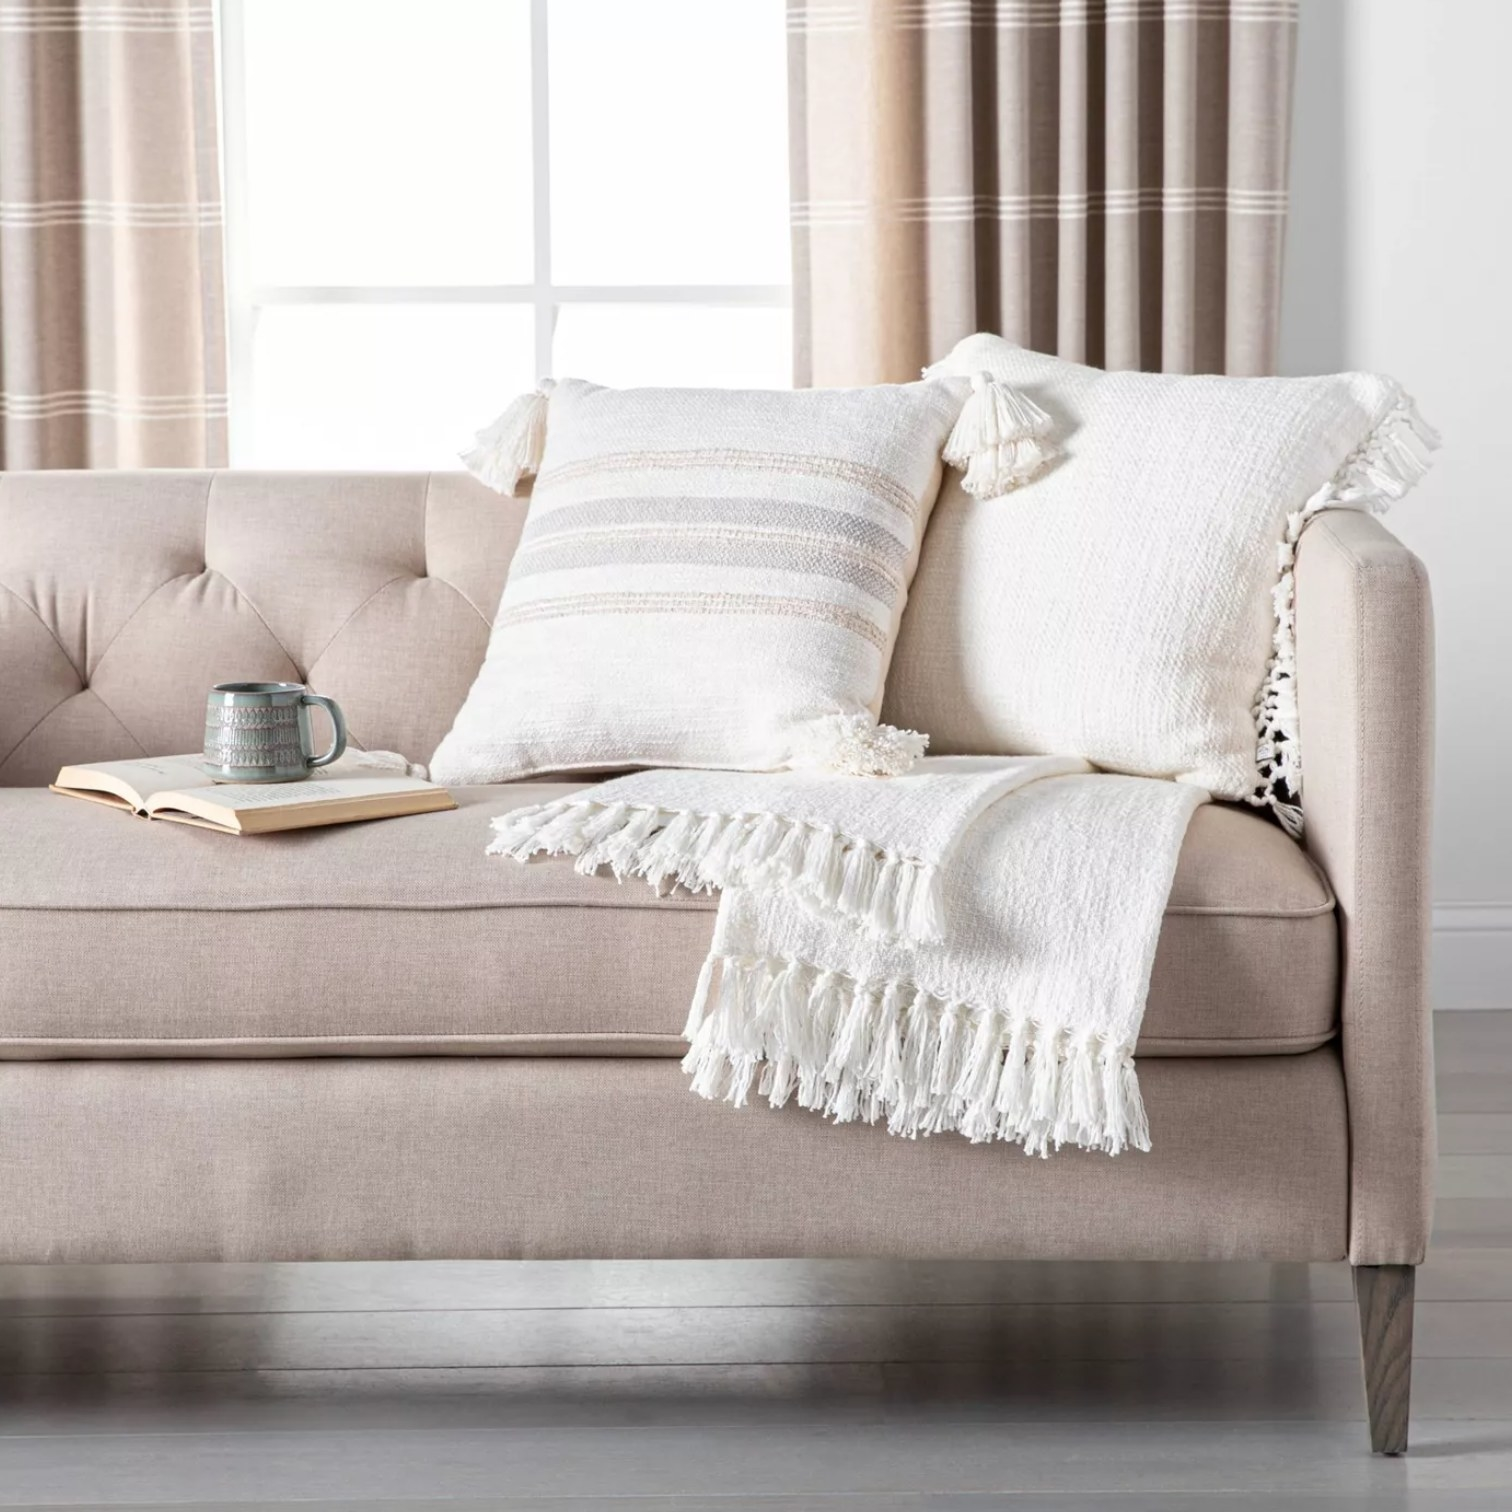 the white blanket on a couch with a pillow and an open book